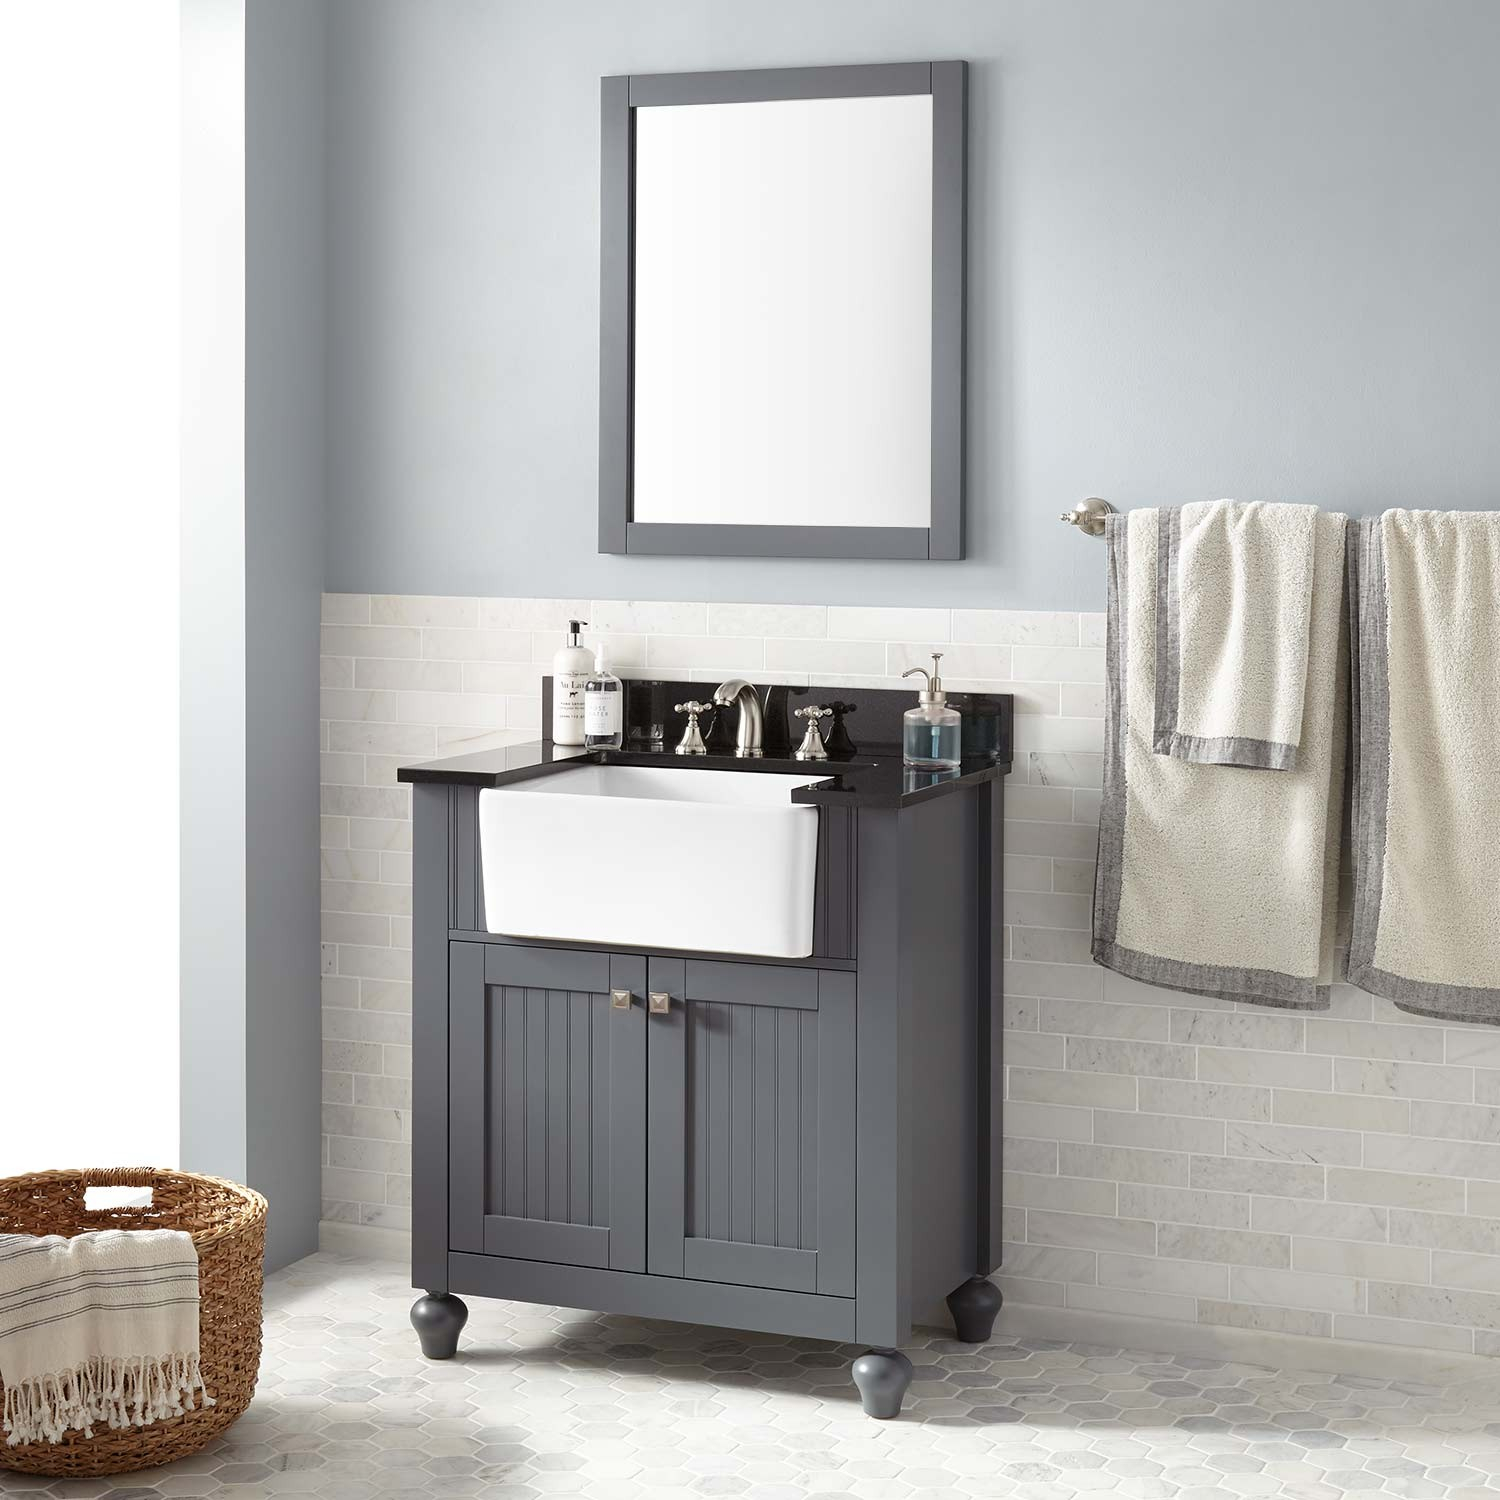 "Beautiful 30"" Nellie Farmhouse Sink Vanity - Dark Gray - Bathroom inside New Farmhouse Sink In Bathroom"